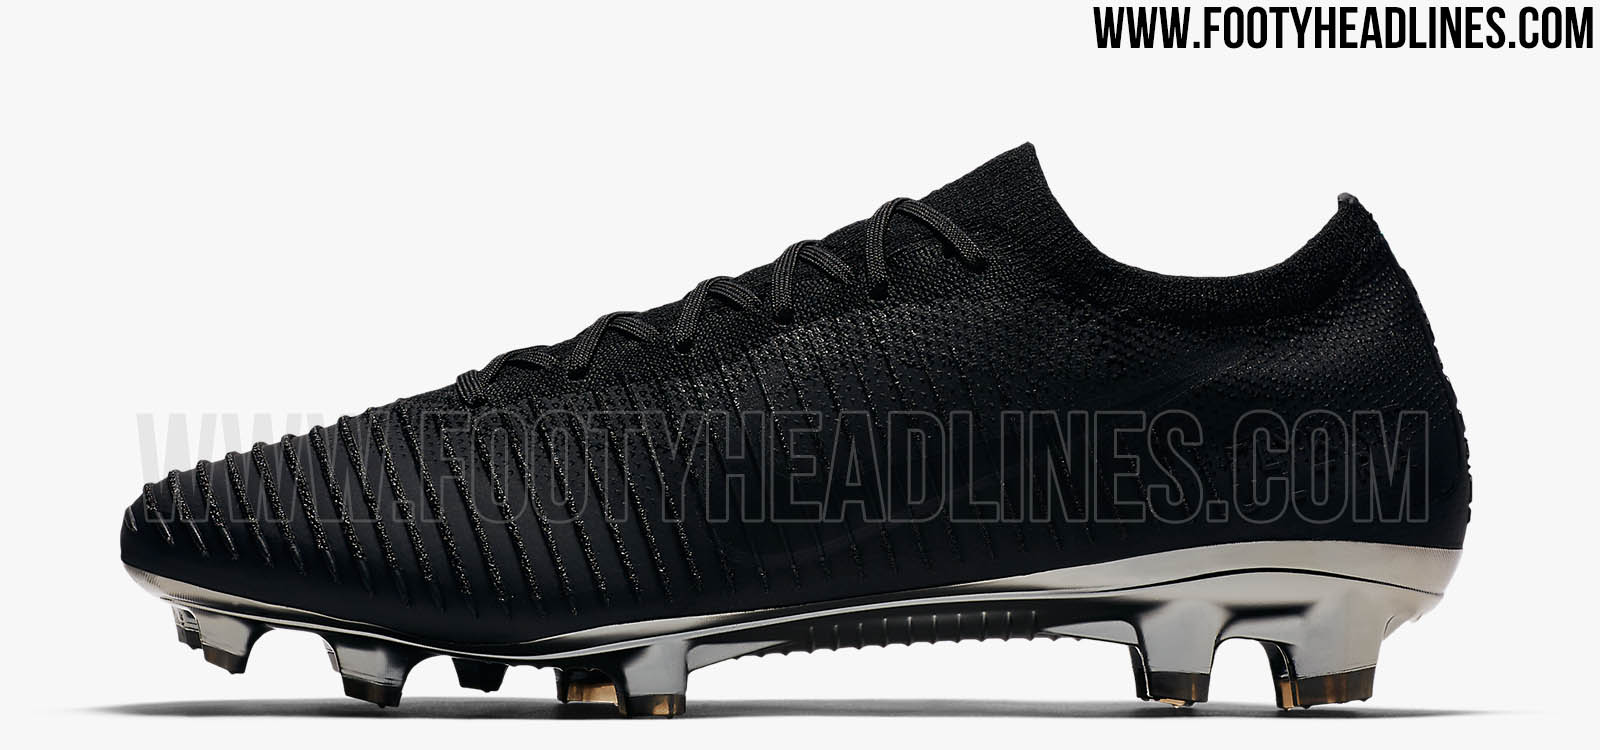 nike jordan shoes nike flyknit football cleats